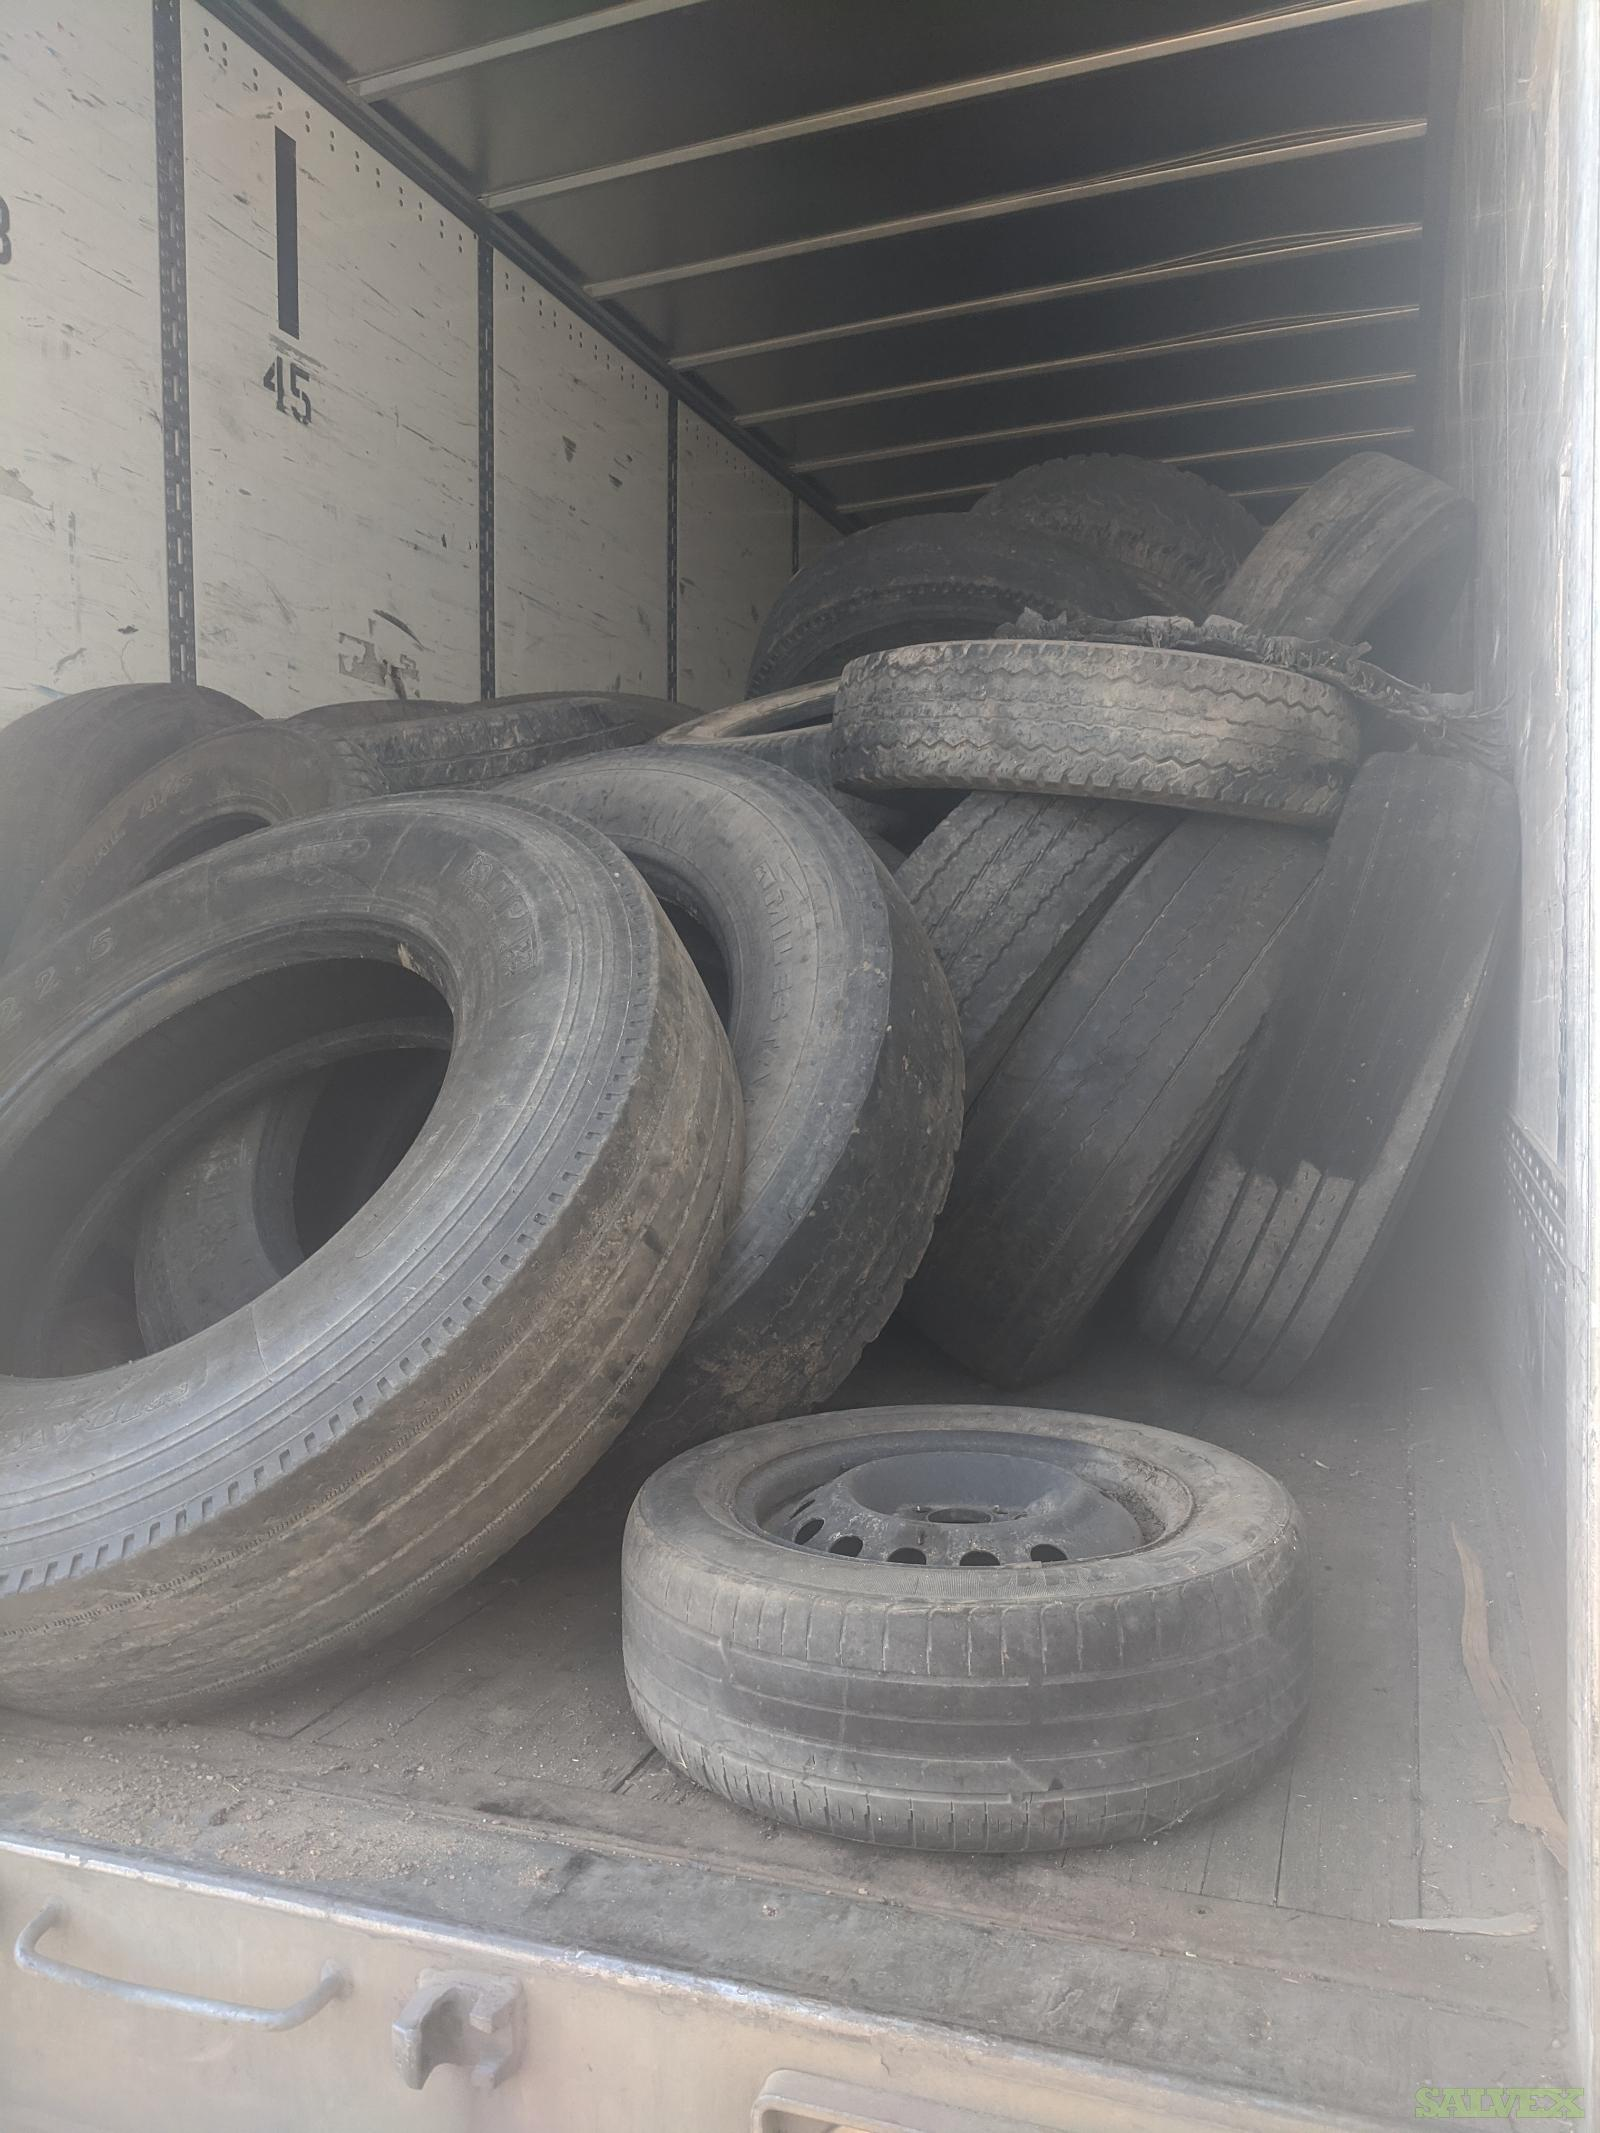 Truck Tires, Used (1 Truckload Approximately)